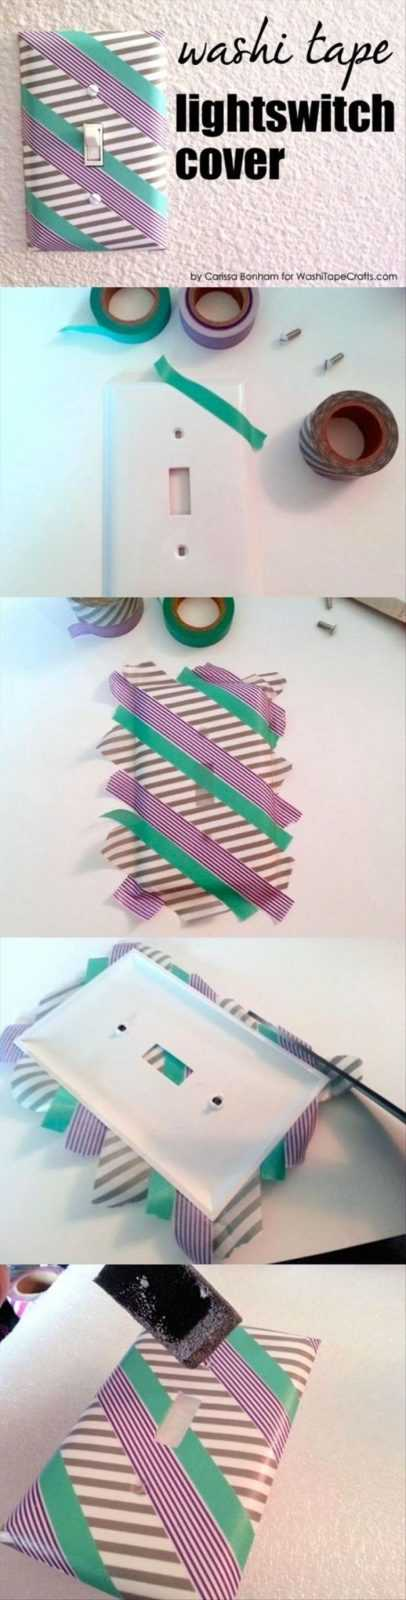 great diy project - simple-yet-great-diy-project-ideas-010